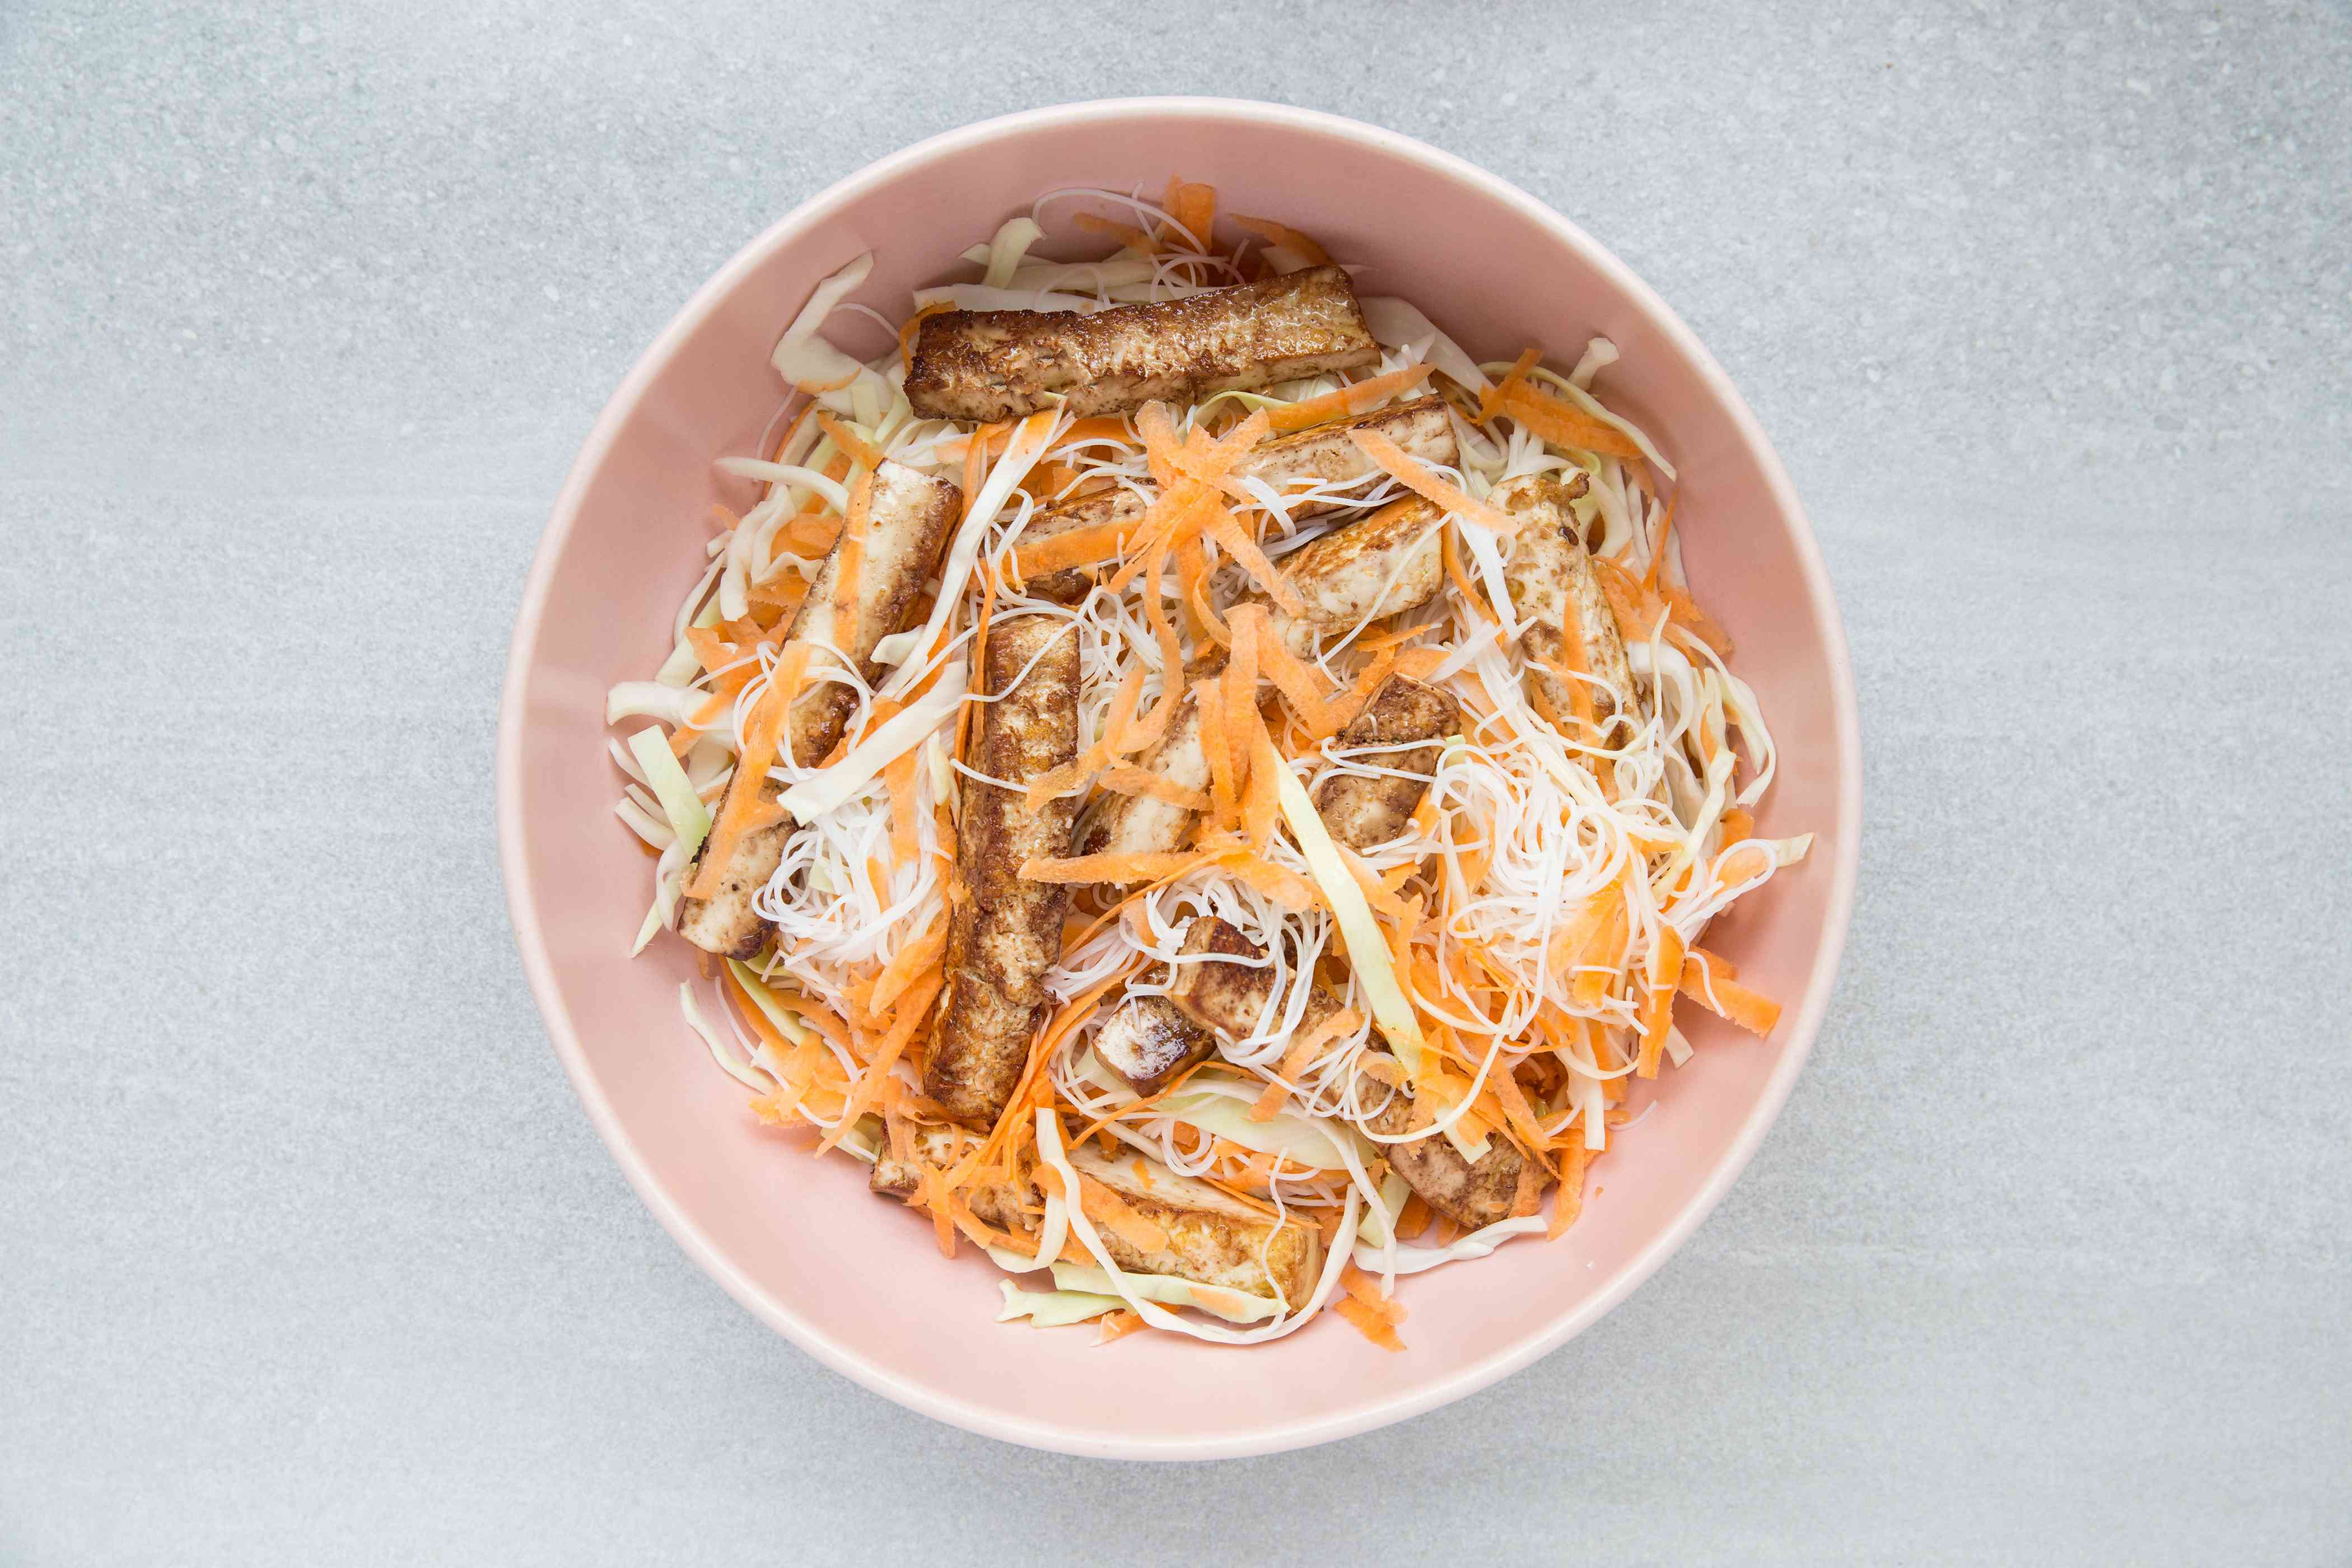 toss together the tofu with the cabbage, carrots, and noodles